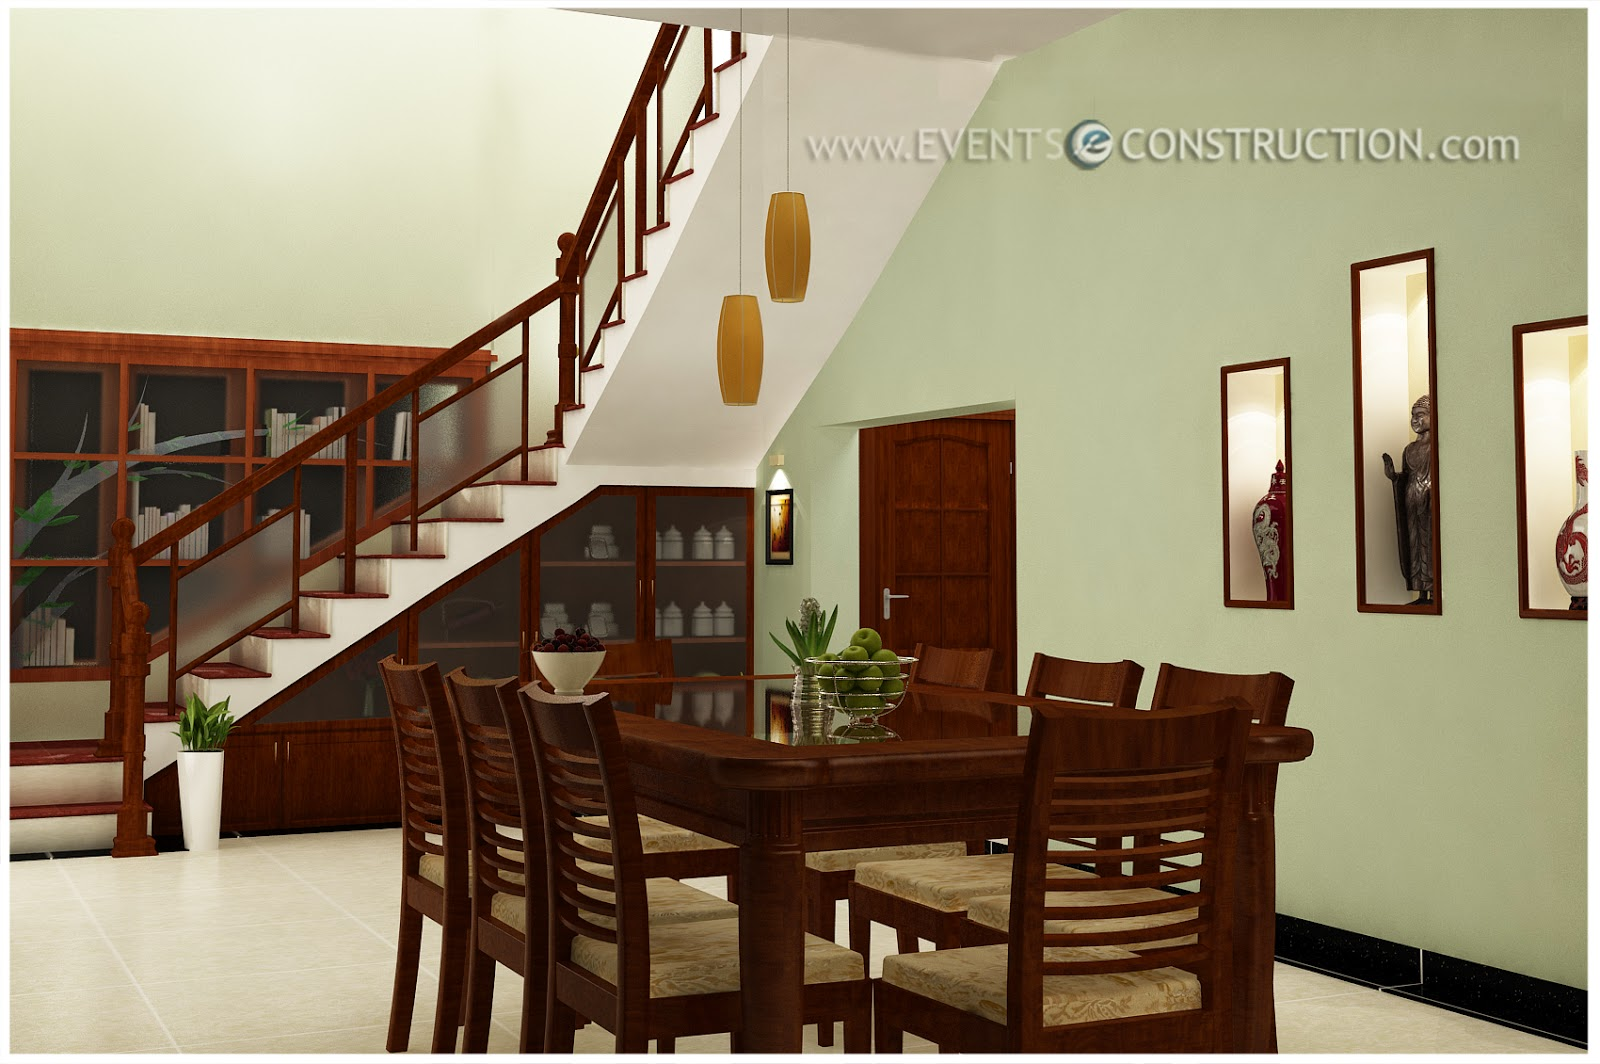 Evens Construction Pvt Ltd Dining Area Designed Under